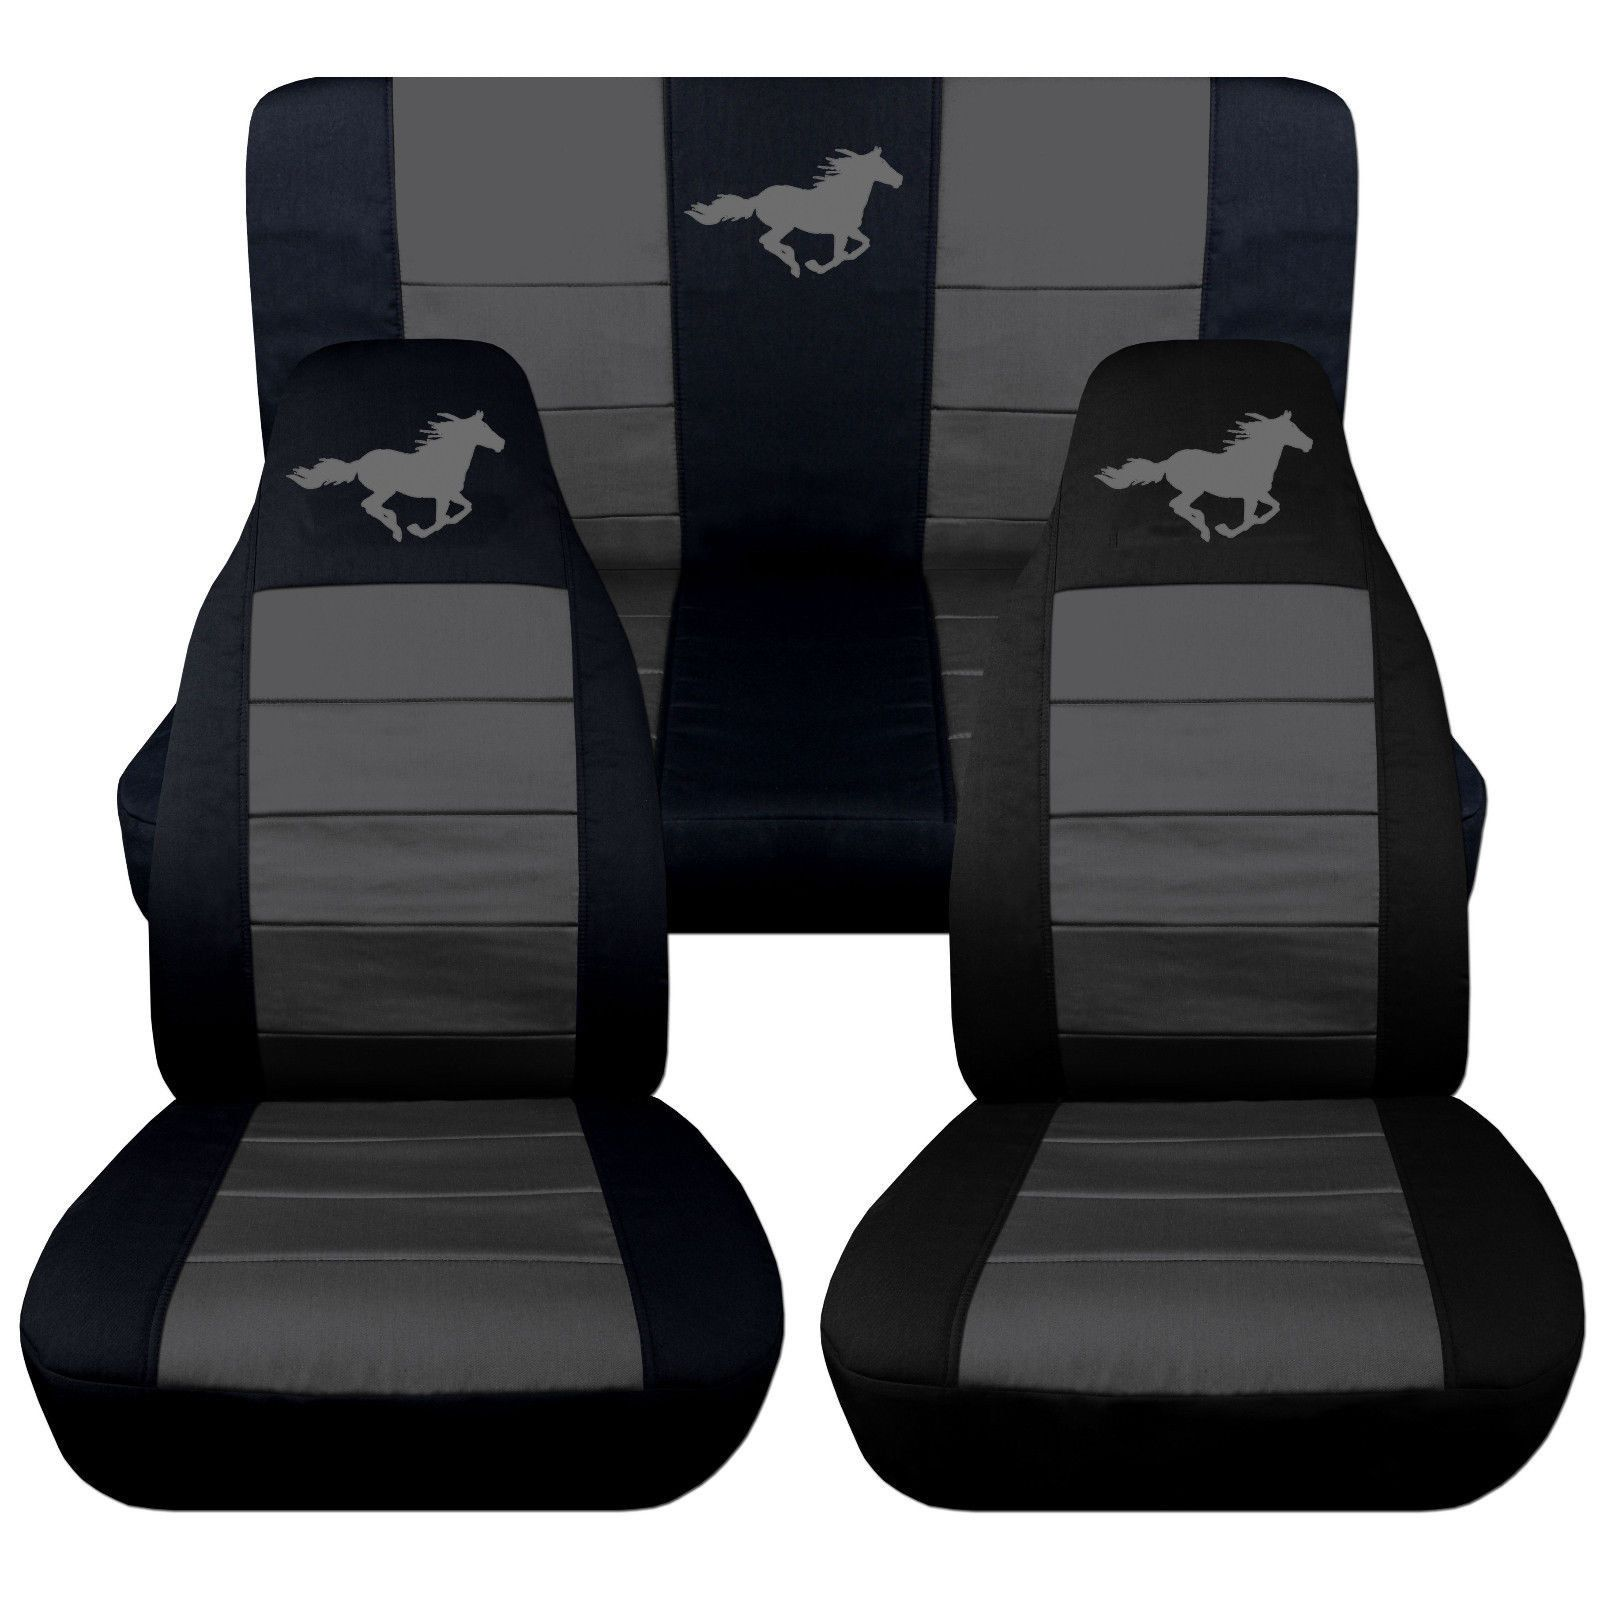 Horse Seat Covers Mustang Pinterest